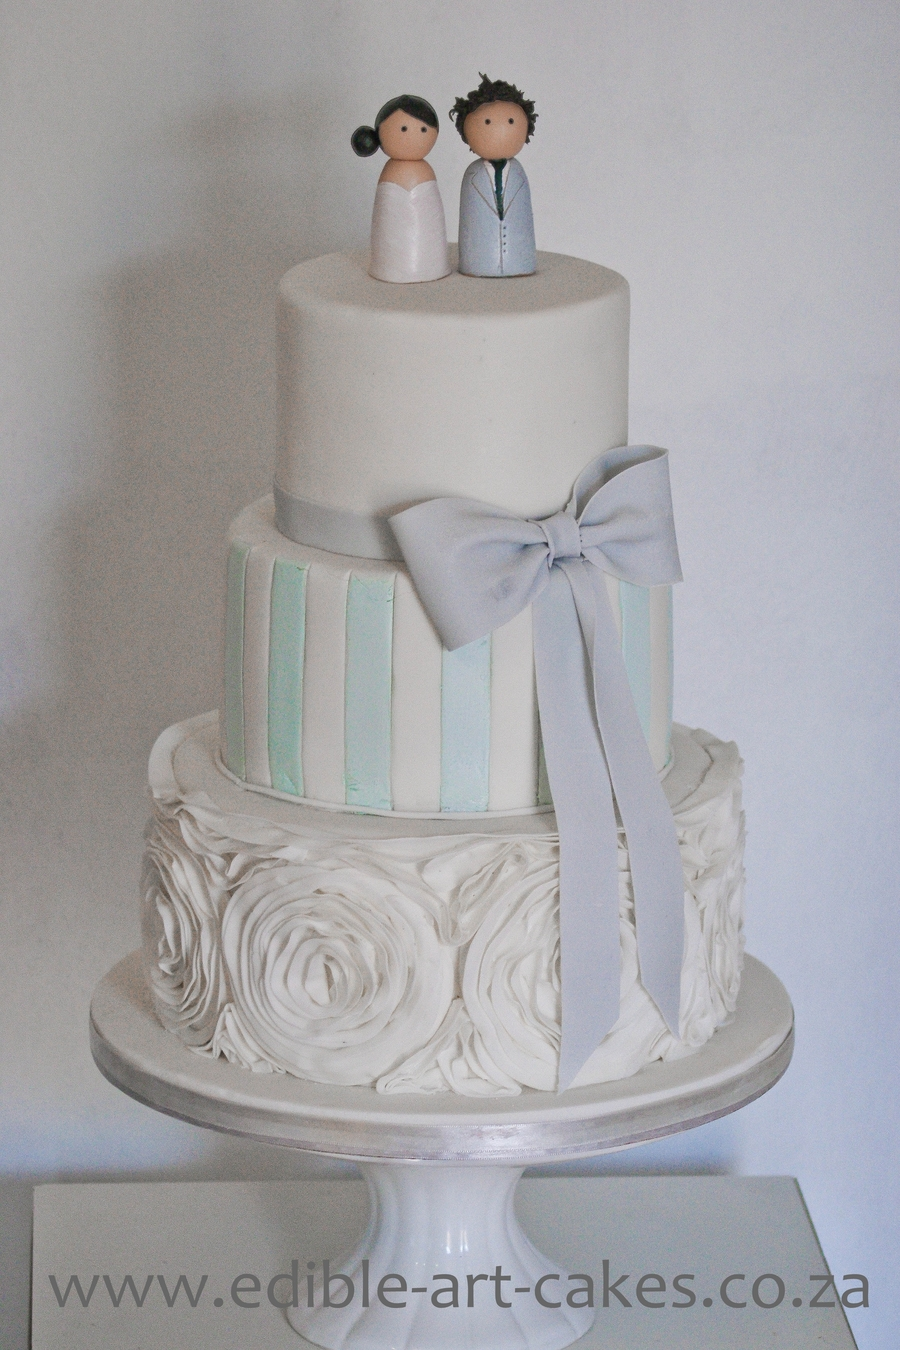 Elegant 3 Tier Cake With Ruffle Bottom And Our Edible Custom Made Toppers on Cake Central